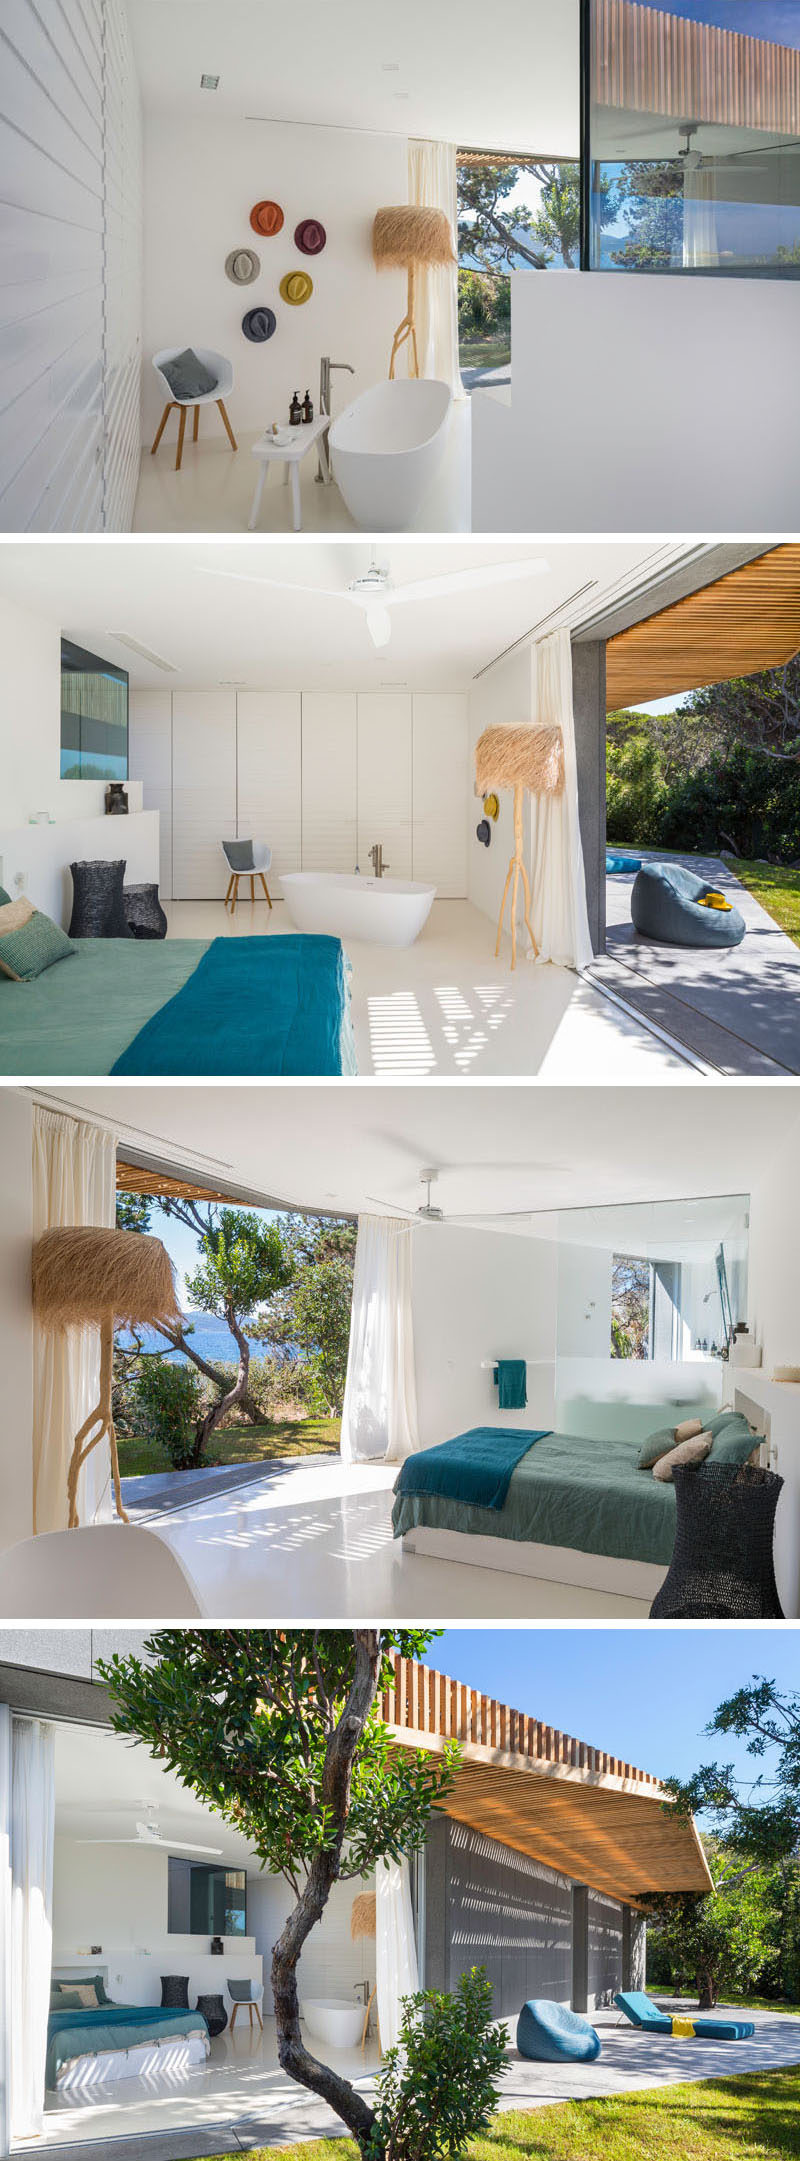 When entering this master bedroom, you are first greeted by a standalone bathtub and then around the corner, you see the bed. The bedroom, as with some of the other bedrooms, open up to the outdoors.